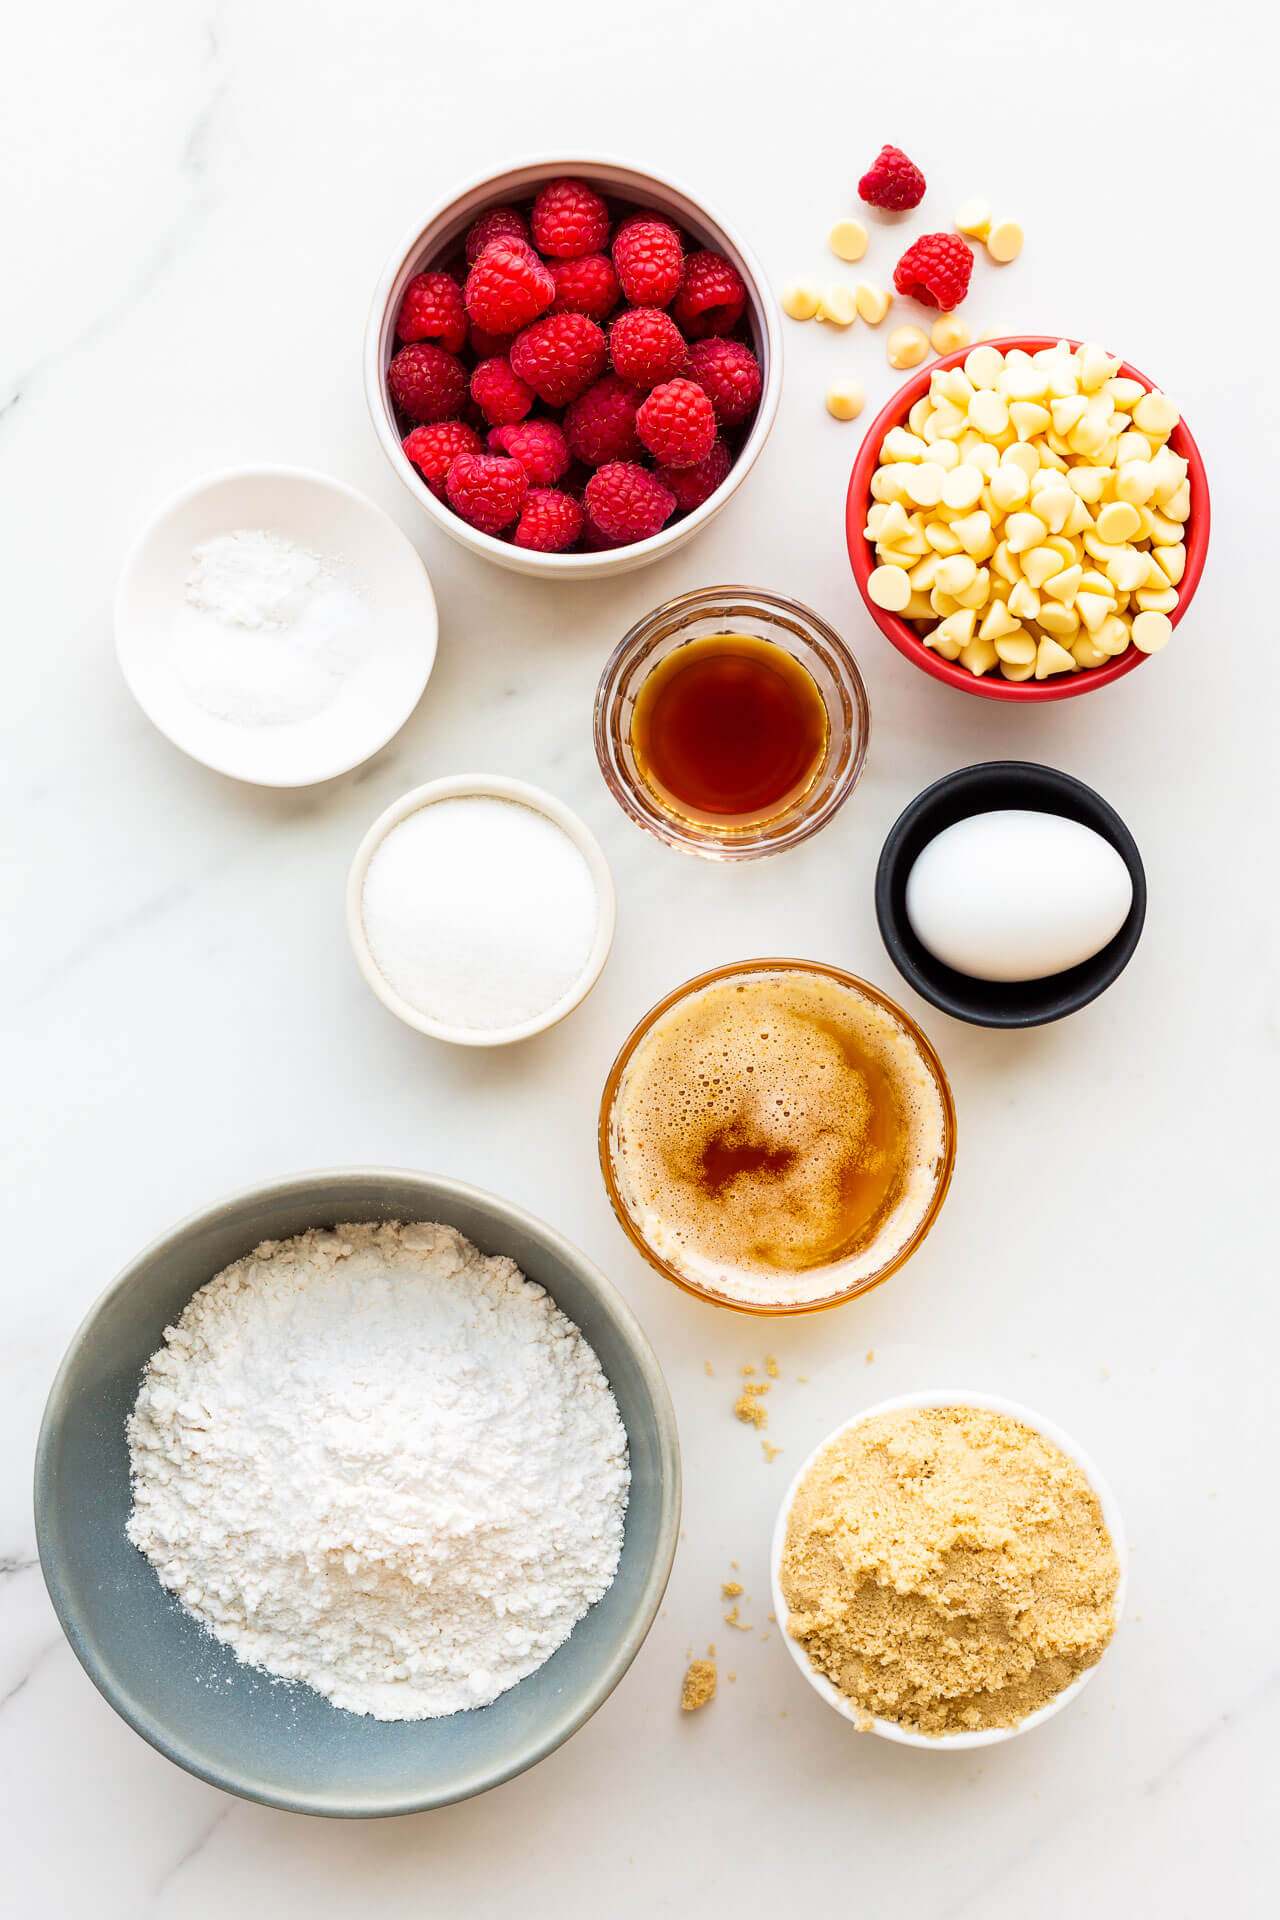 Ingredients measured out to make blondies with fresh raspberries and white chocolate, as well as flour, brown sugar, white sugar, browned butter, salt, baking powder, baking soda,1 egg, vanilla extract.